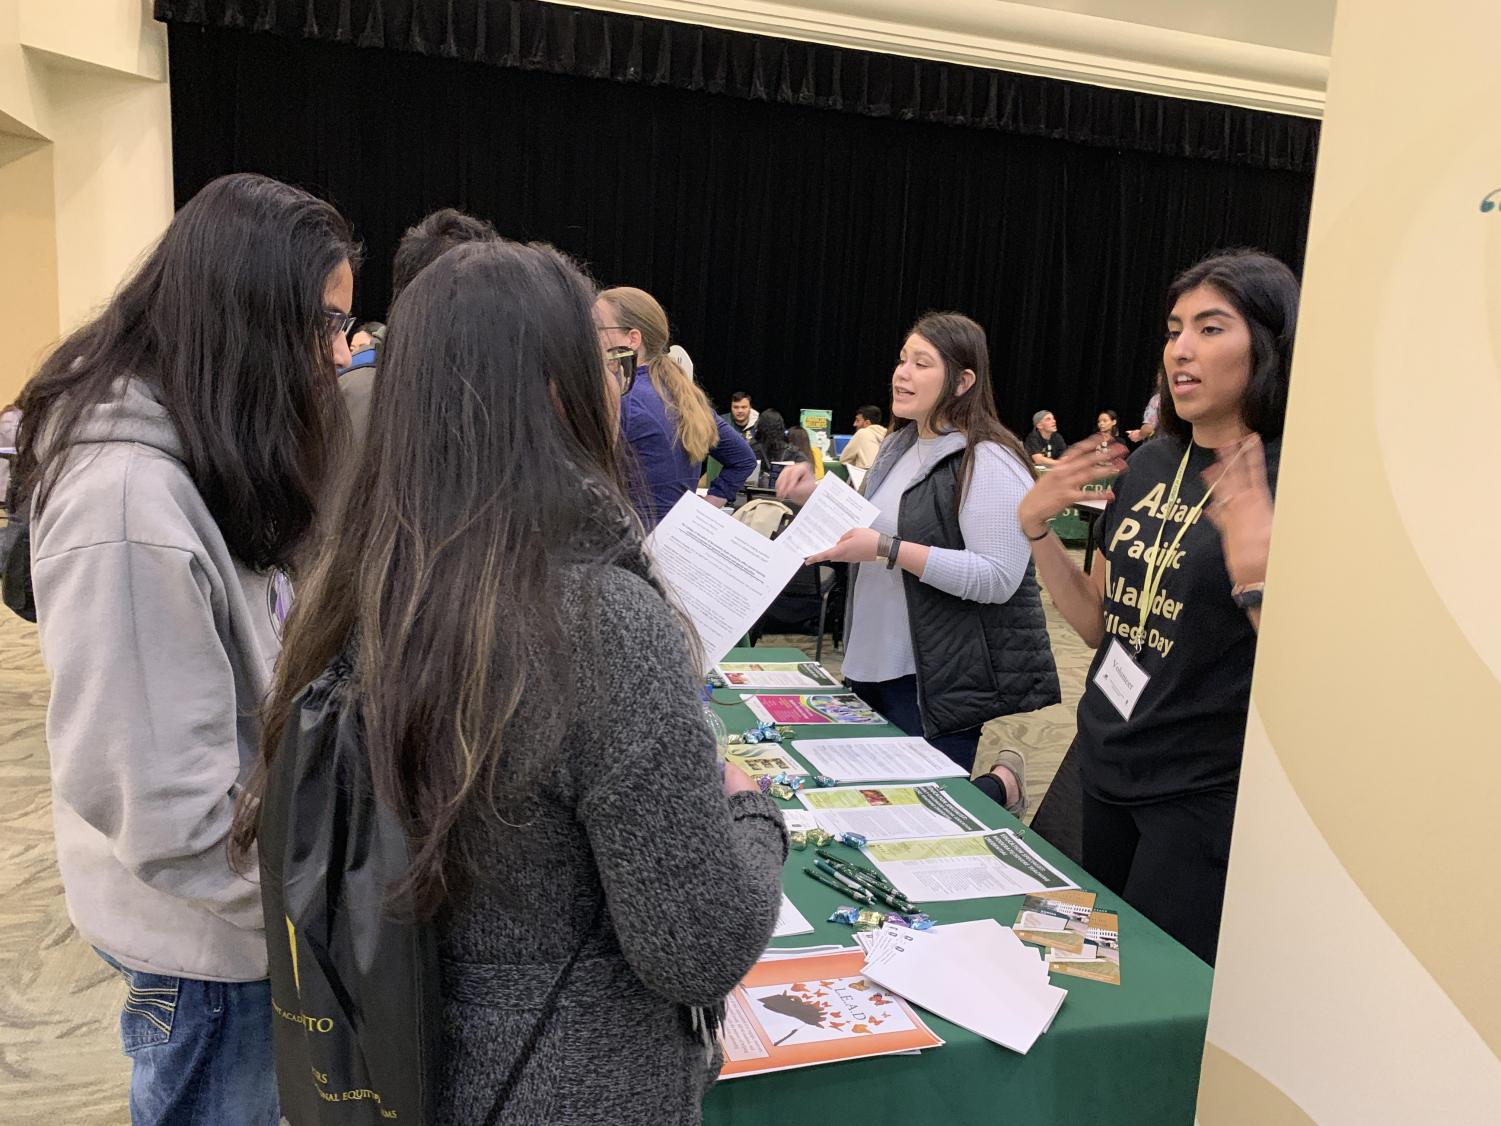 Students talk to college organizations in the University Union ballroom on Friday, March 29 during Asian Pacific Islander College day. Students were able to talk to different organizations and departments about what university resources are offered.